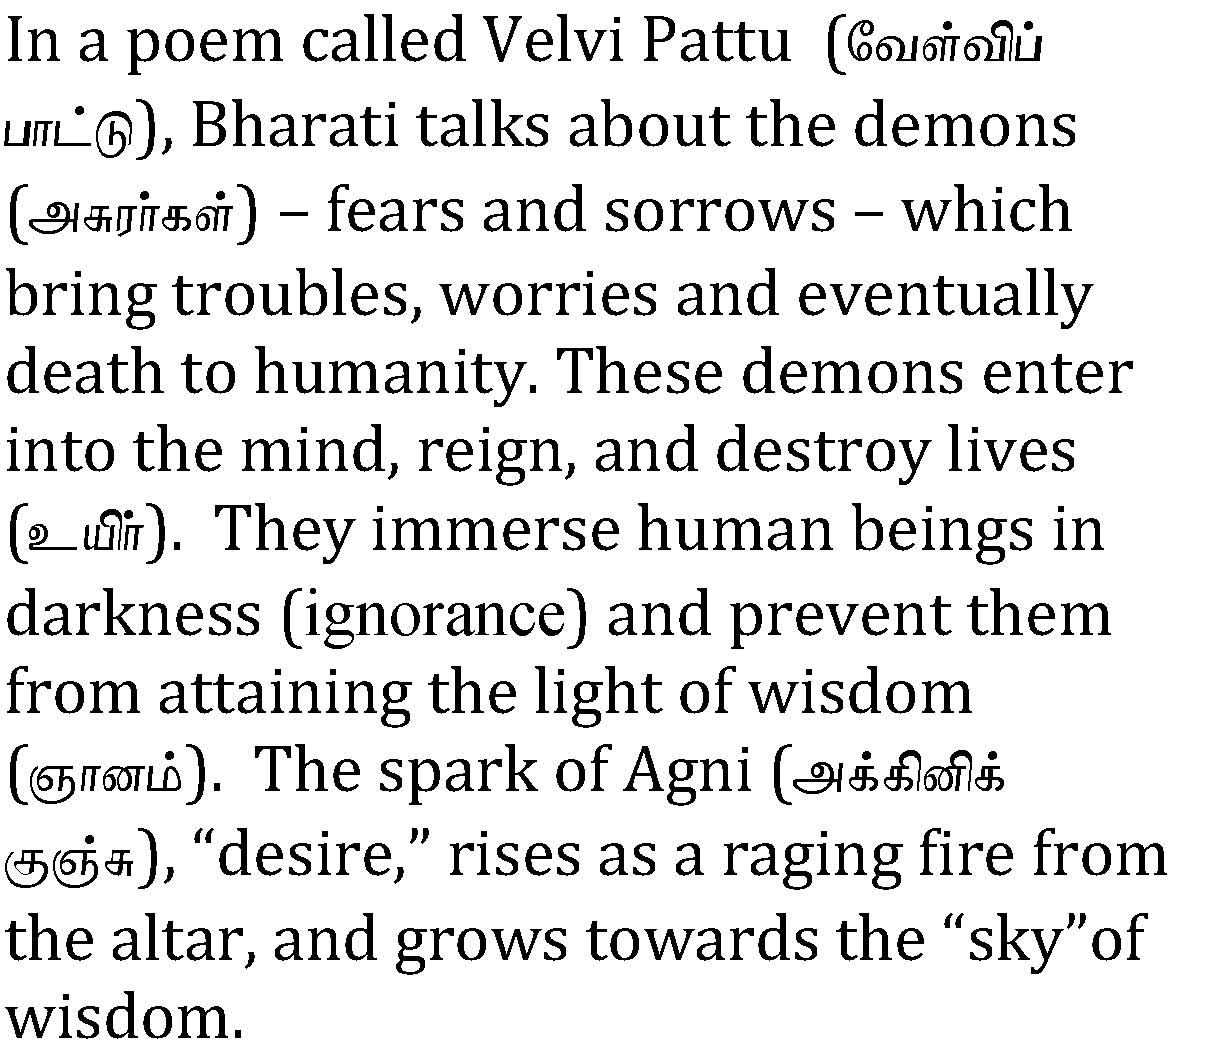 In a poem called Velvi Pattu